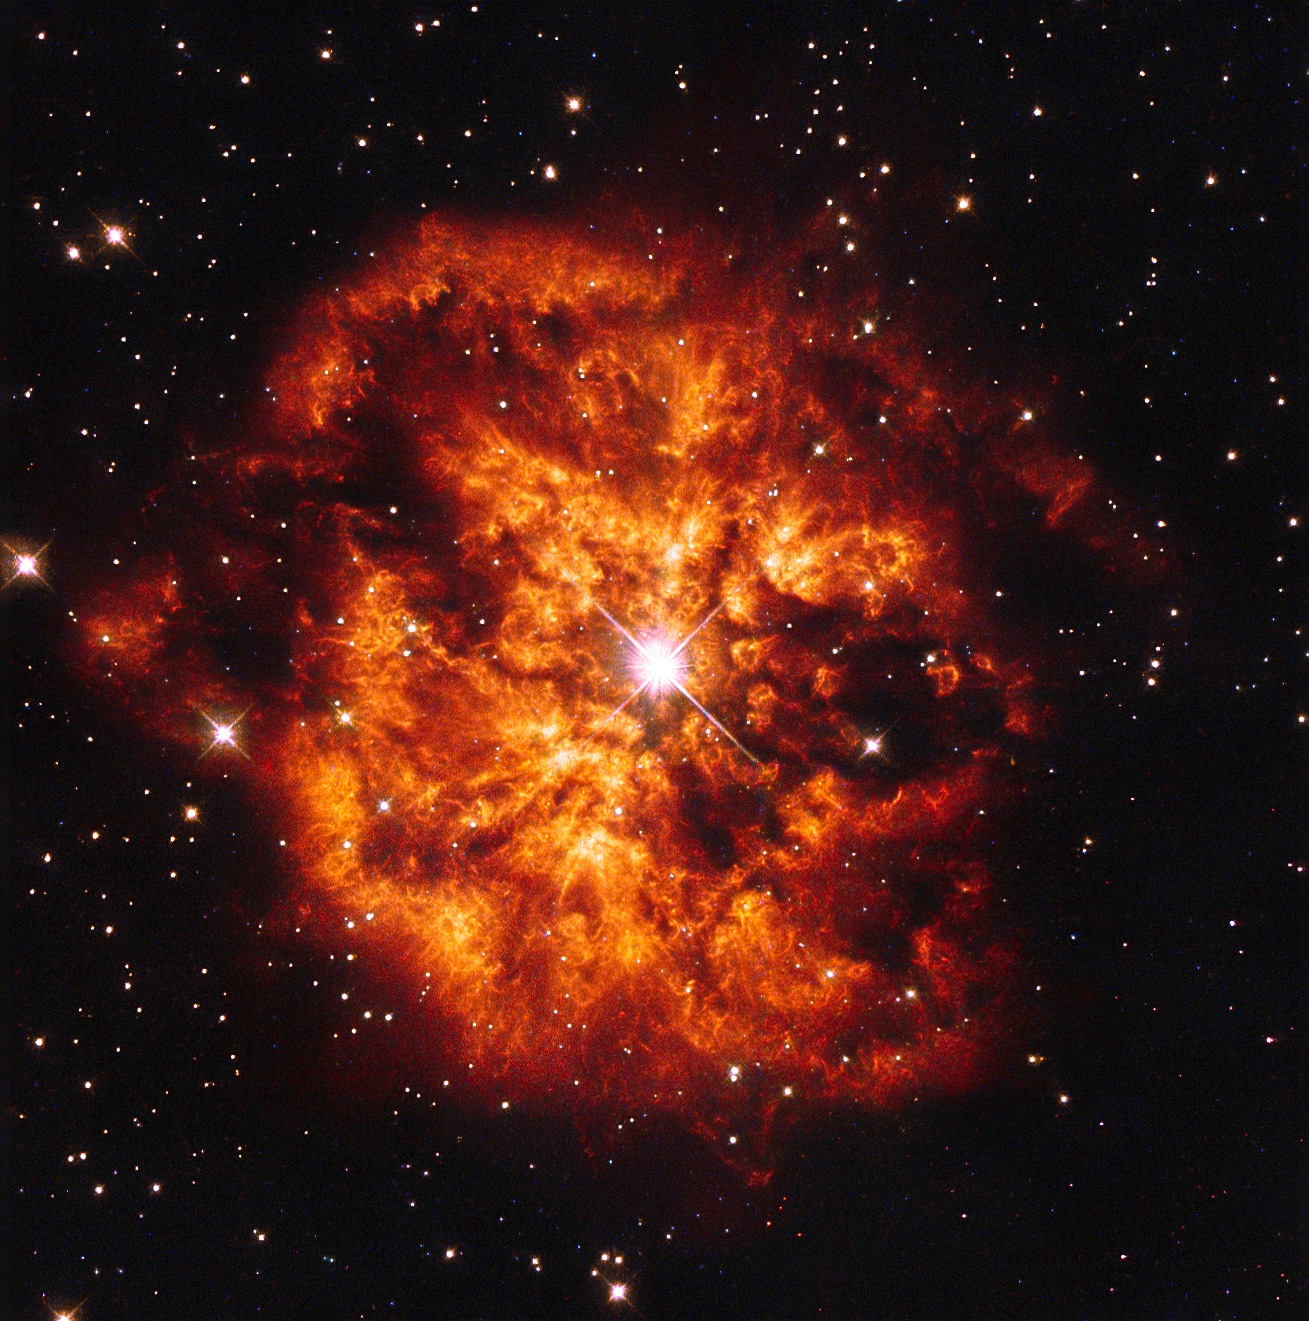 In this NASA/ESA Hubble Space Telescope image we see the central Wolf-Rayet star known as Hen2-427 — more commonly known as WR124 — surrounded by the nebula M1-67. Both objects are found in the constellation of Sagitta some 15,000 light-years away. The hot clumps of gas ejected by the star into space are travelling at over 150,000kilometres per hour. Image credit: ESA/Hubble & NASA. Acknowledgement: J. Schmidt.